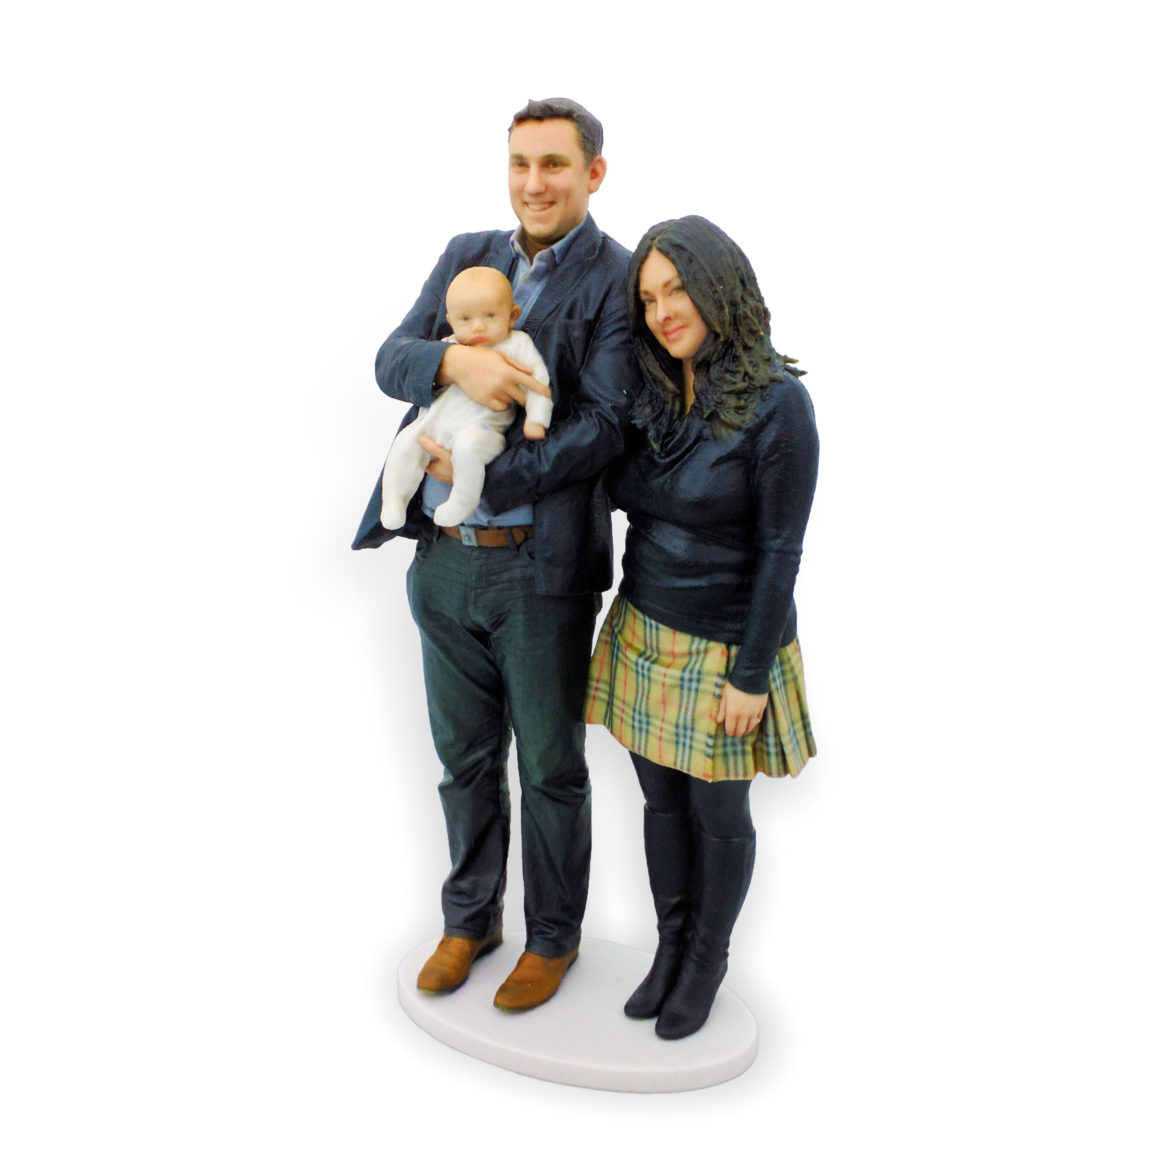 my3Dtwin, 3D Printed Figurine of family with newborn in hands